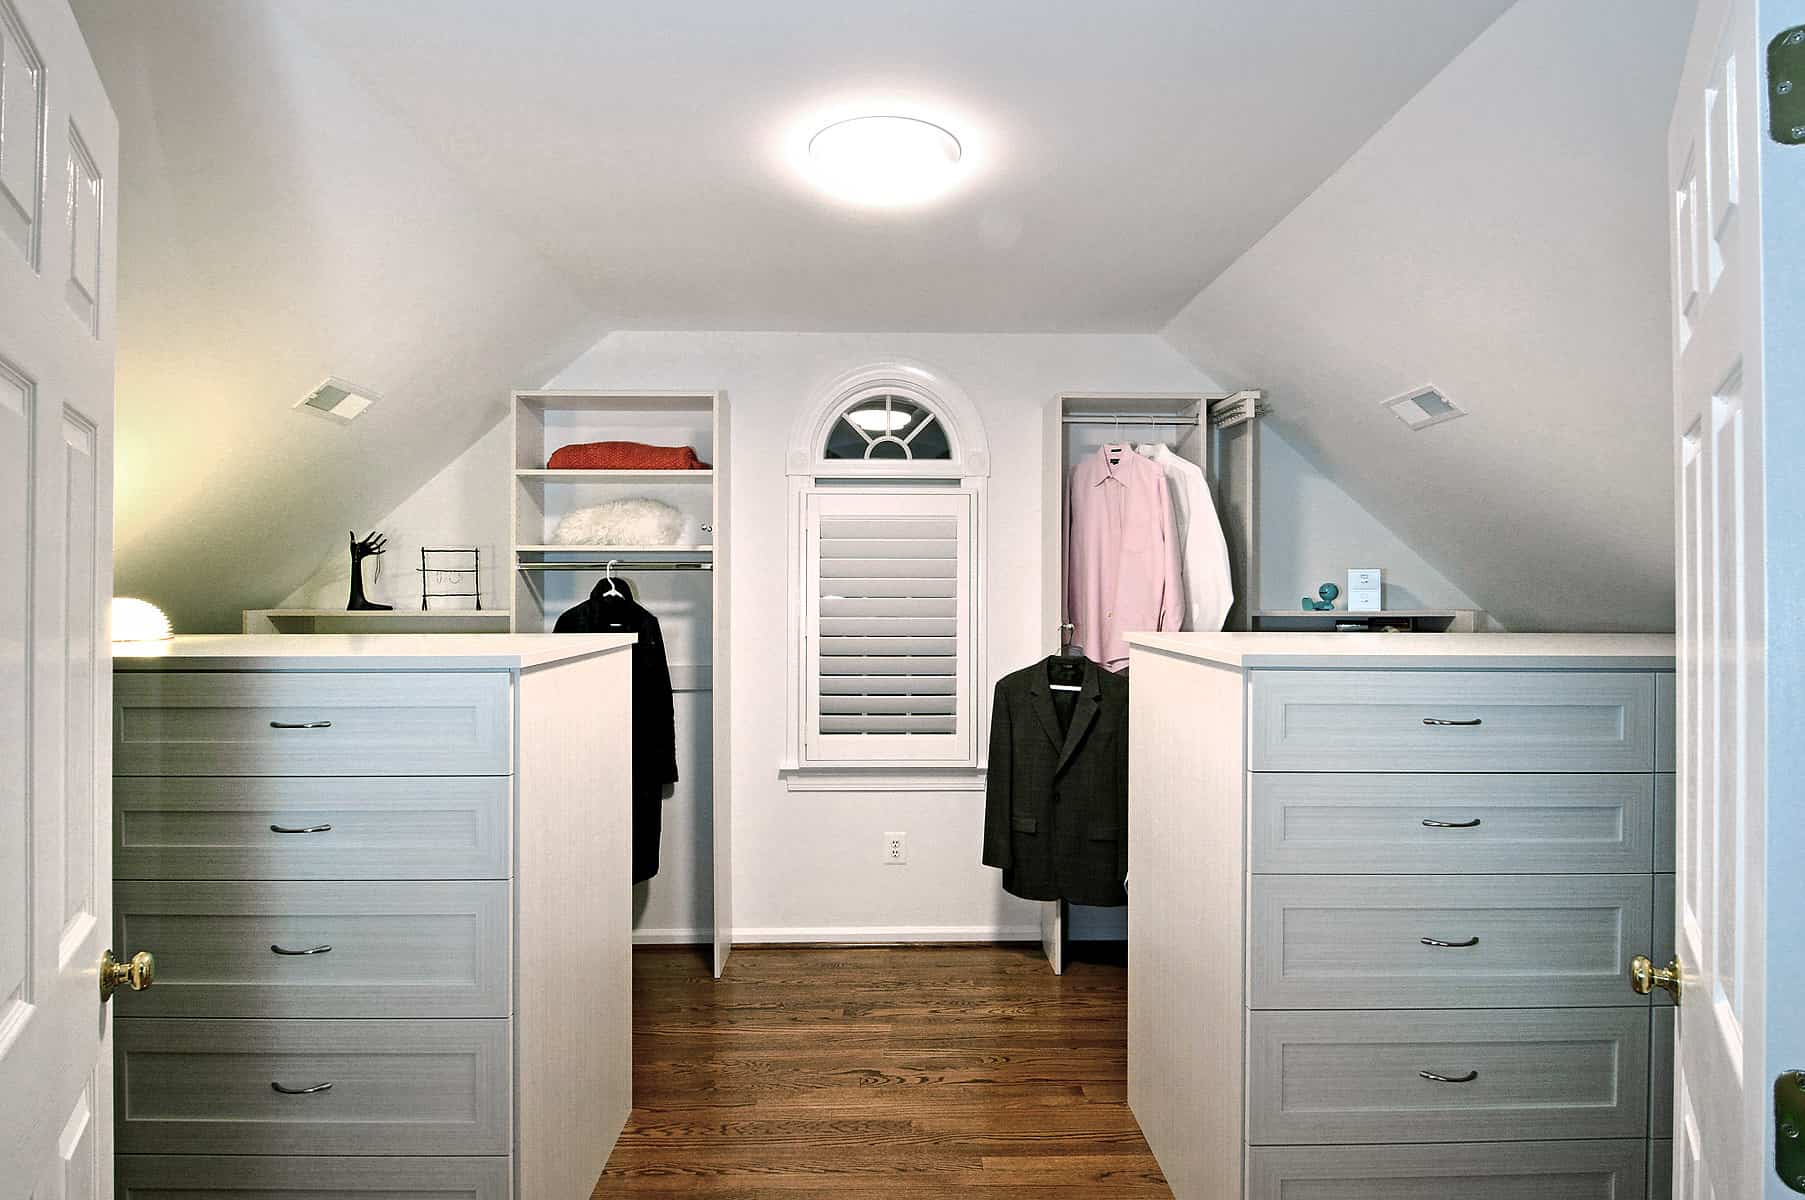 This bedroom closet features white walls and cabinetry, along with a hardwood flooring.